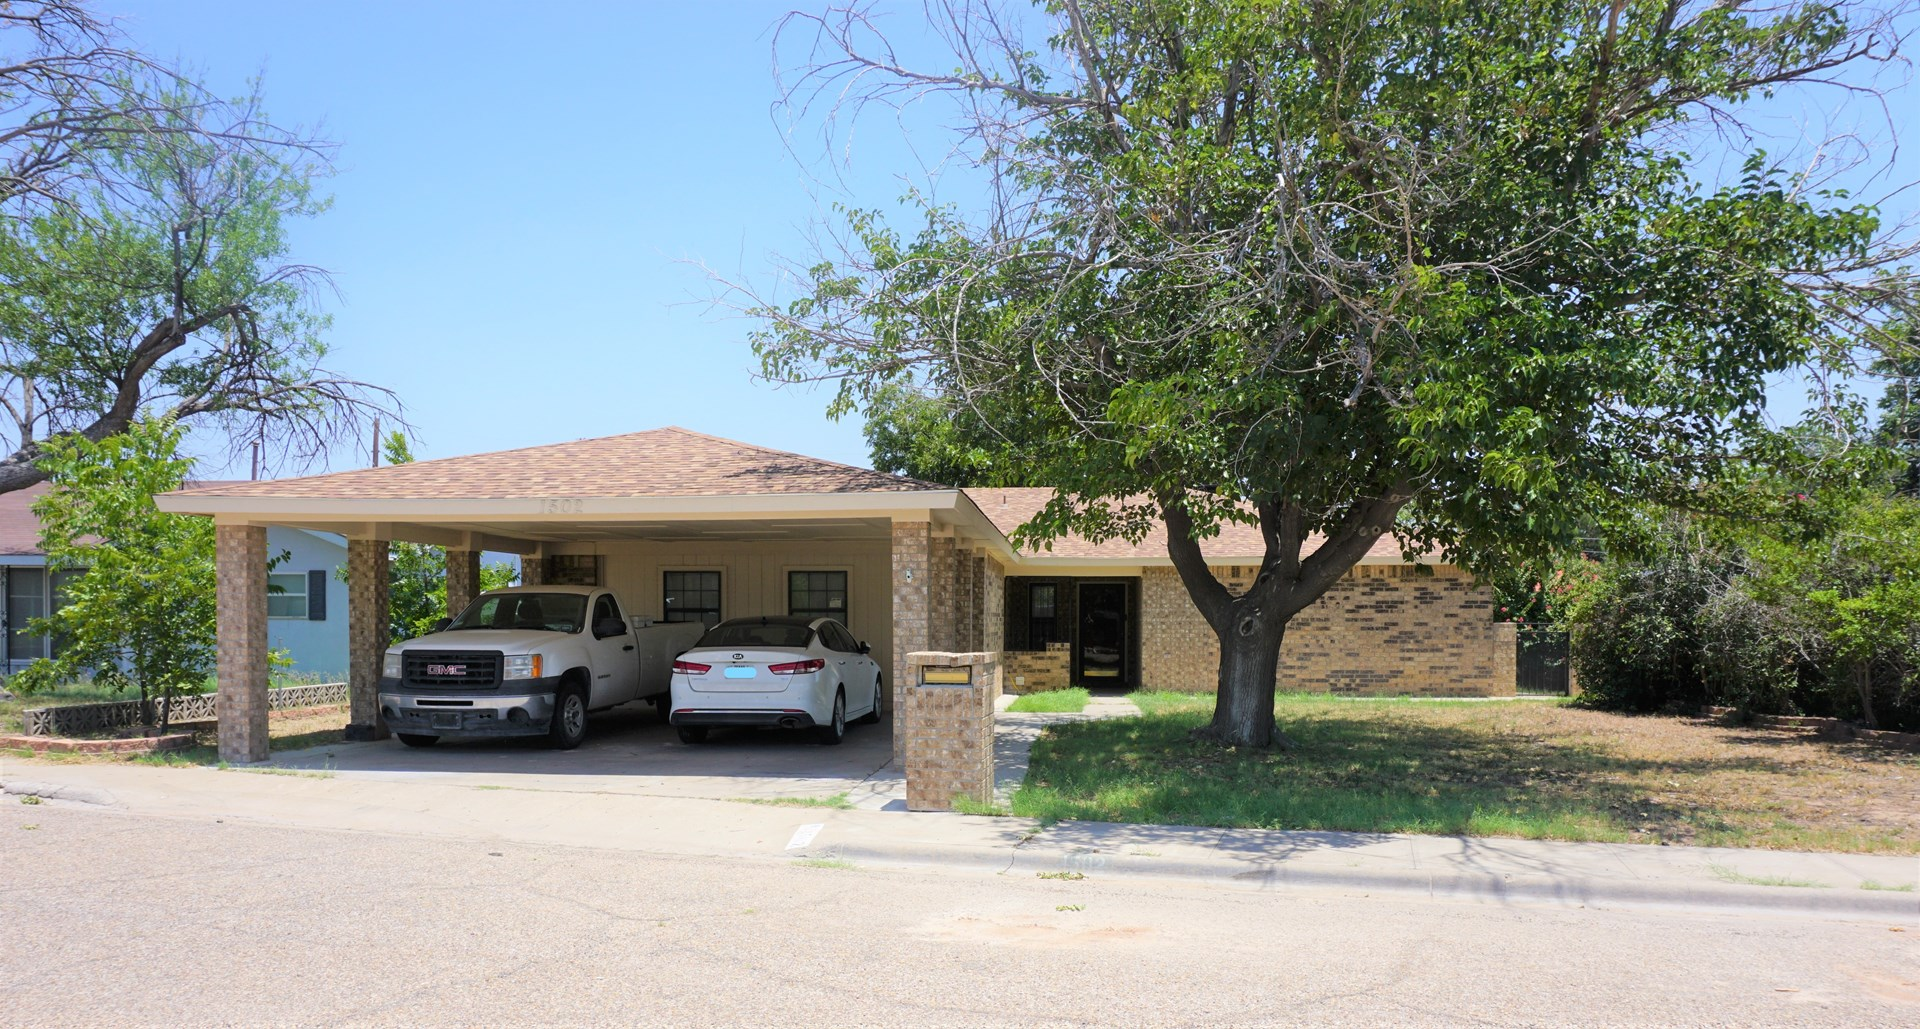 1502 S Allen Avenue in Monahans, TX Has That Solid Feel!